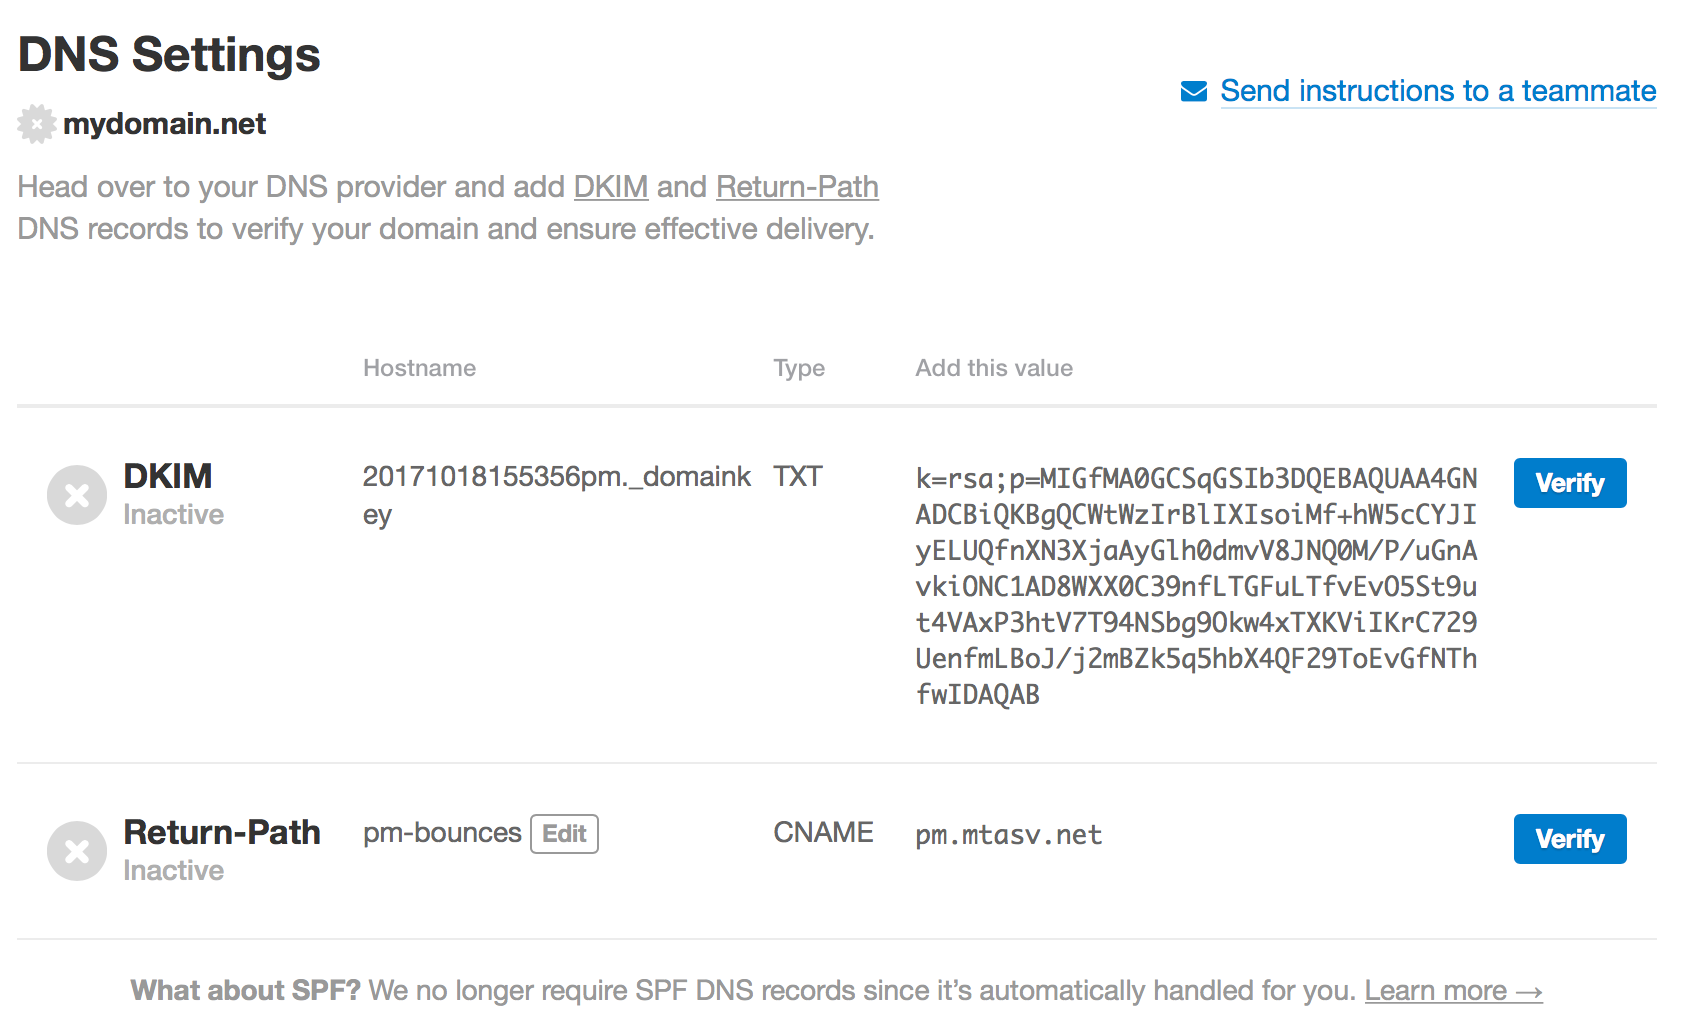 Records for DKIM and Return-Path